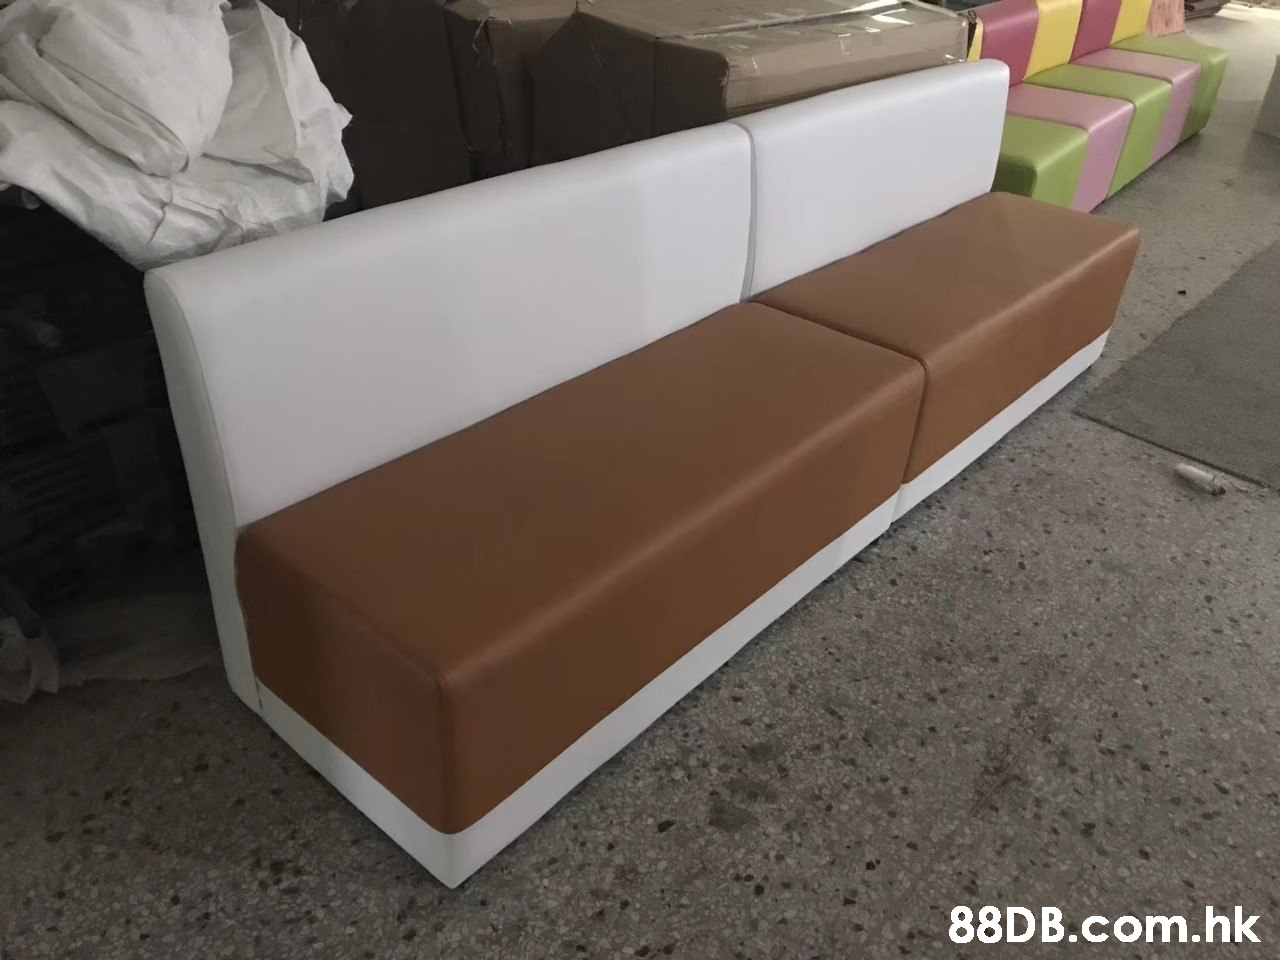 .hk  Couch,Furniture,Sofa bed,studio couch,Brown